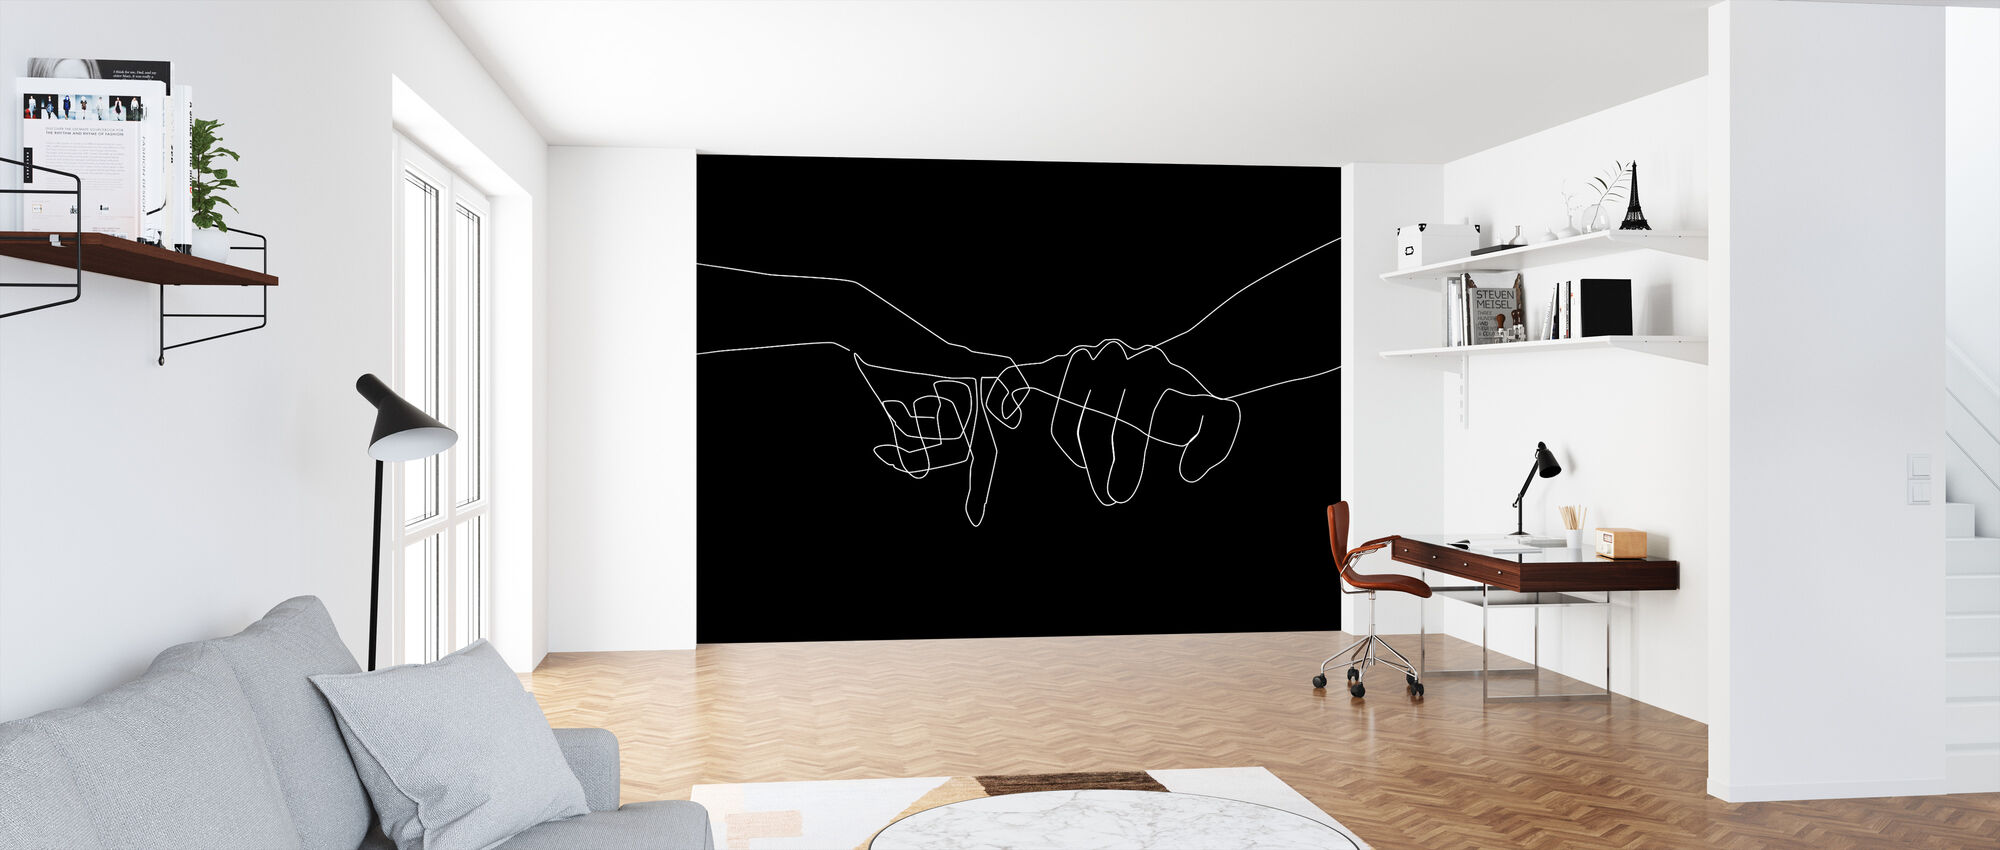 Black Pinky Swear - Wallpaper - Office